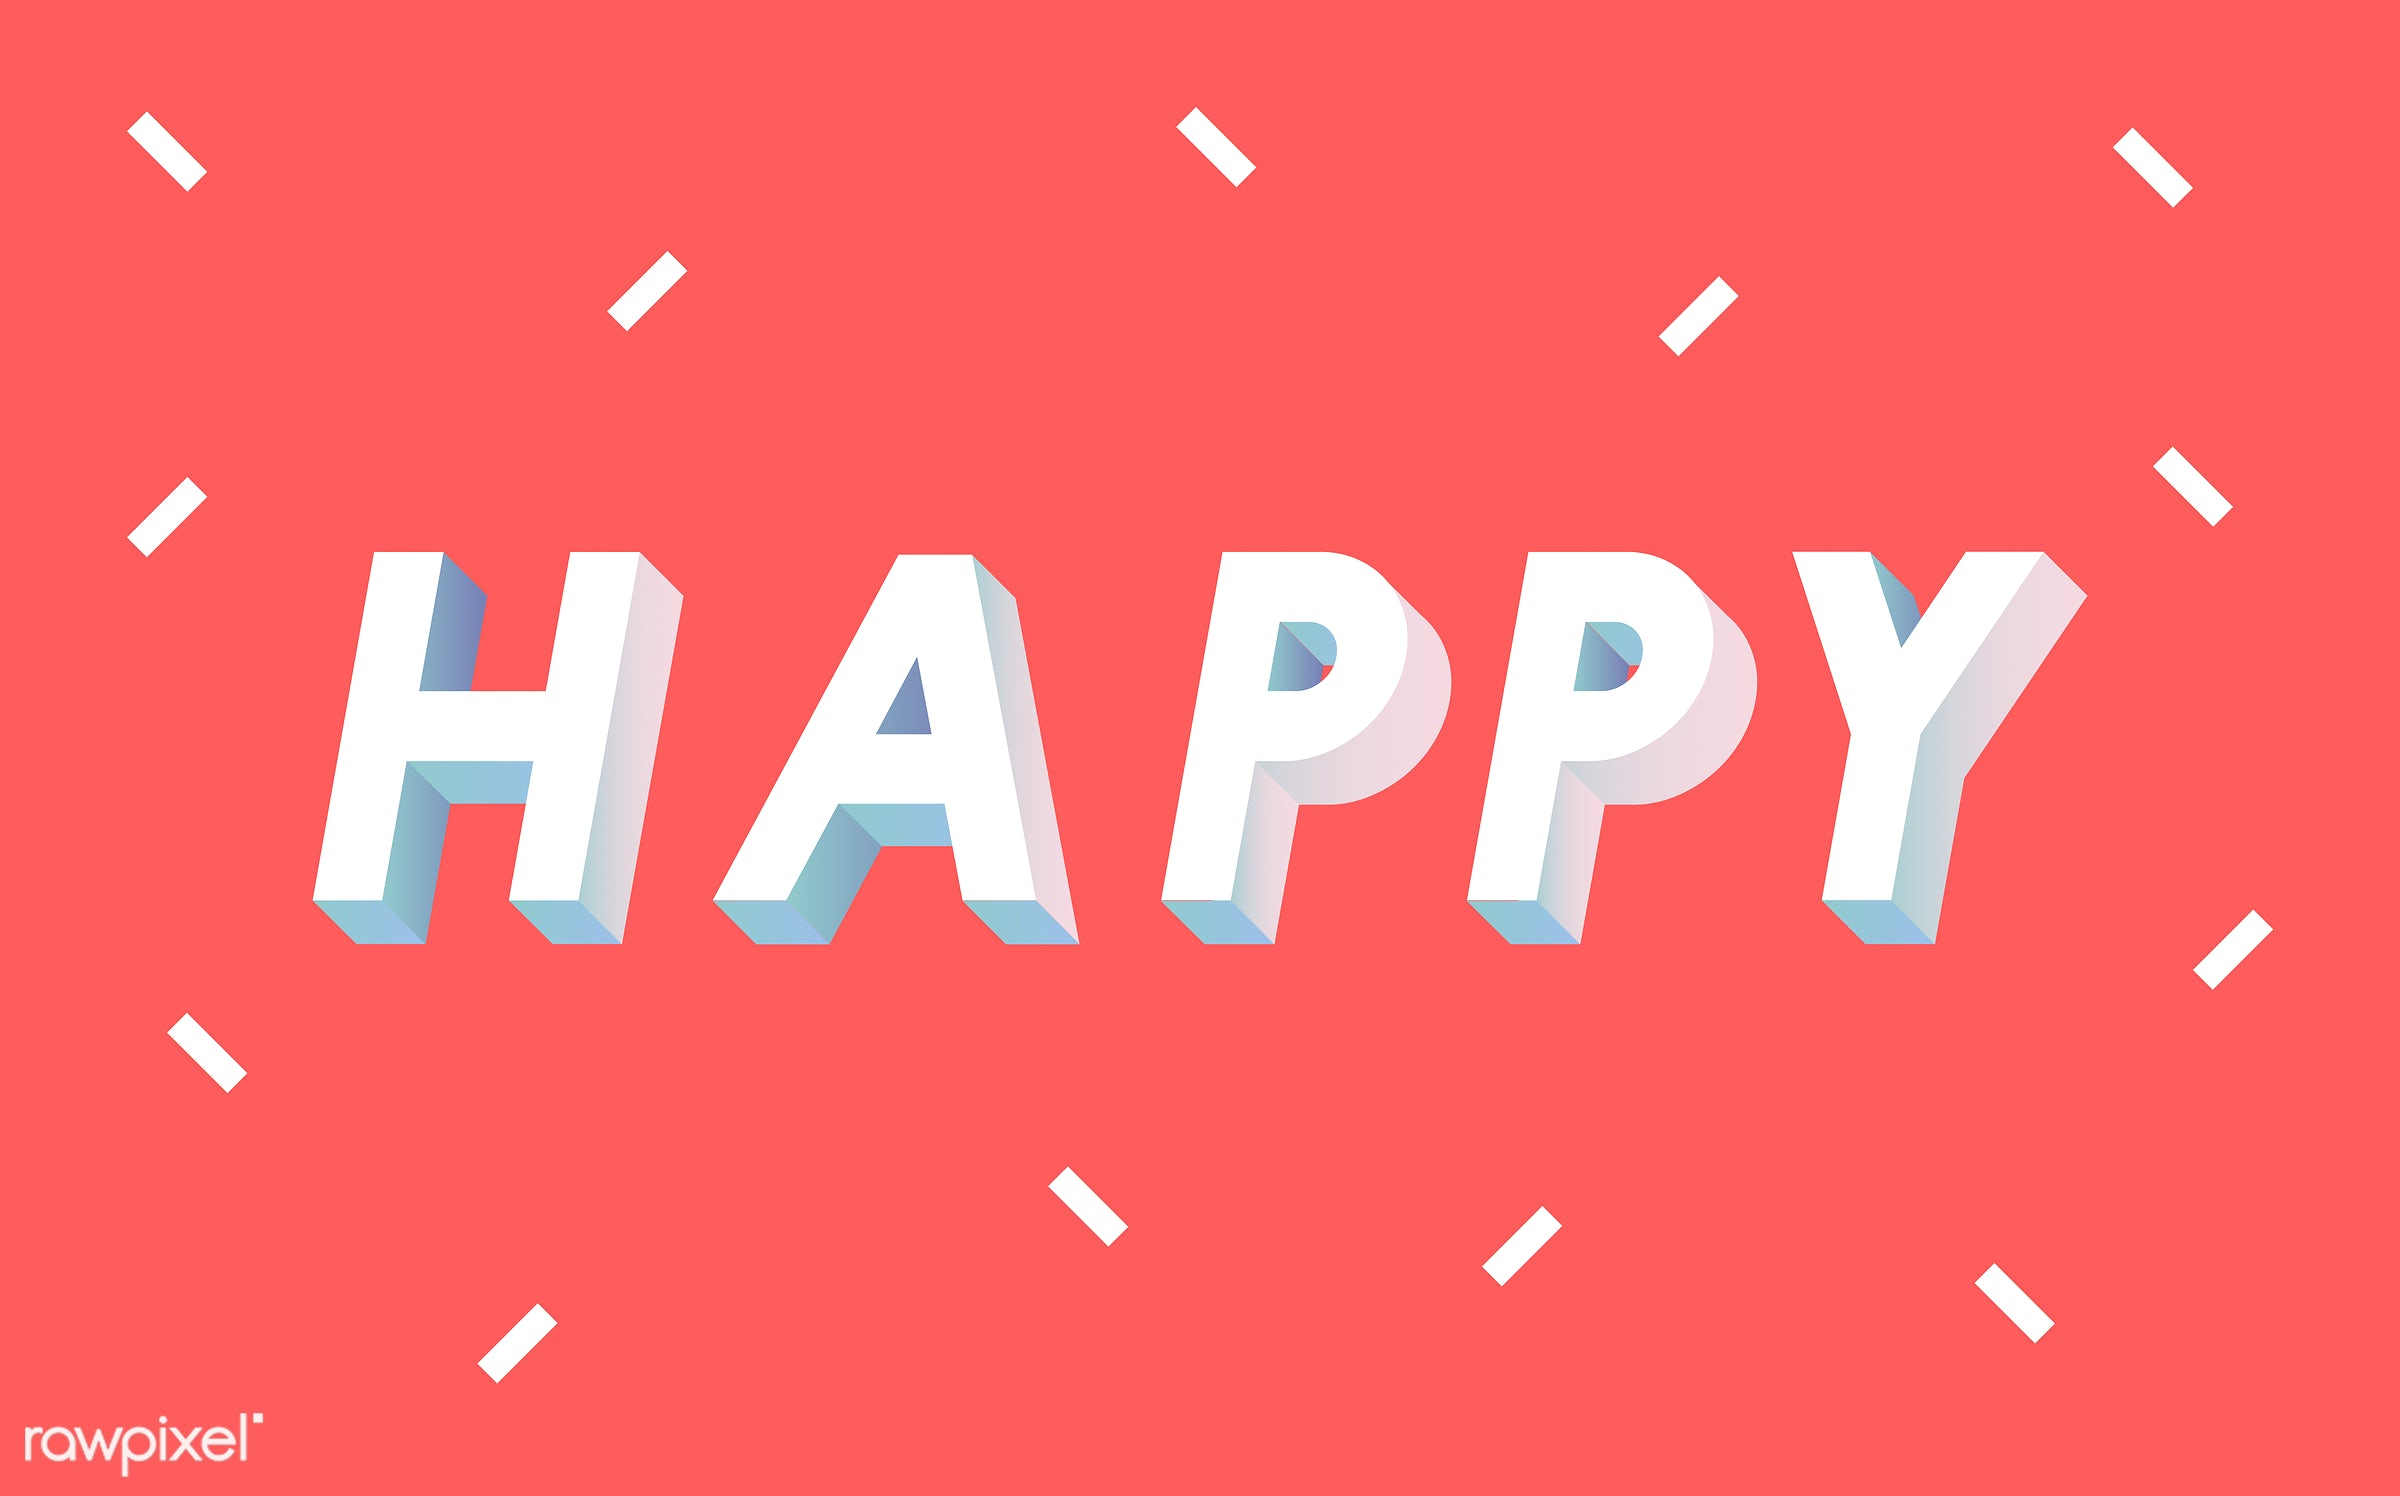 neon, colorful, 3d, three dimensional, vector, illustration, graphic, word, red, white, happy, be happy, happiness